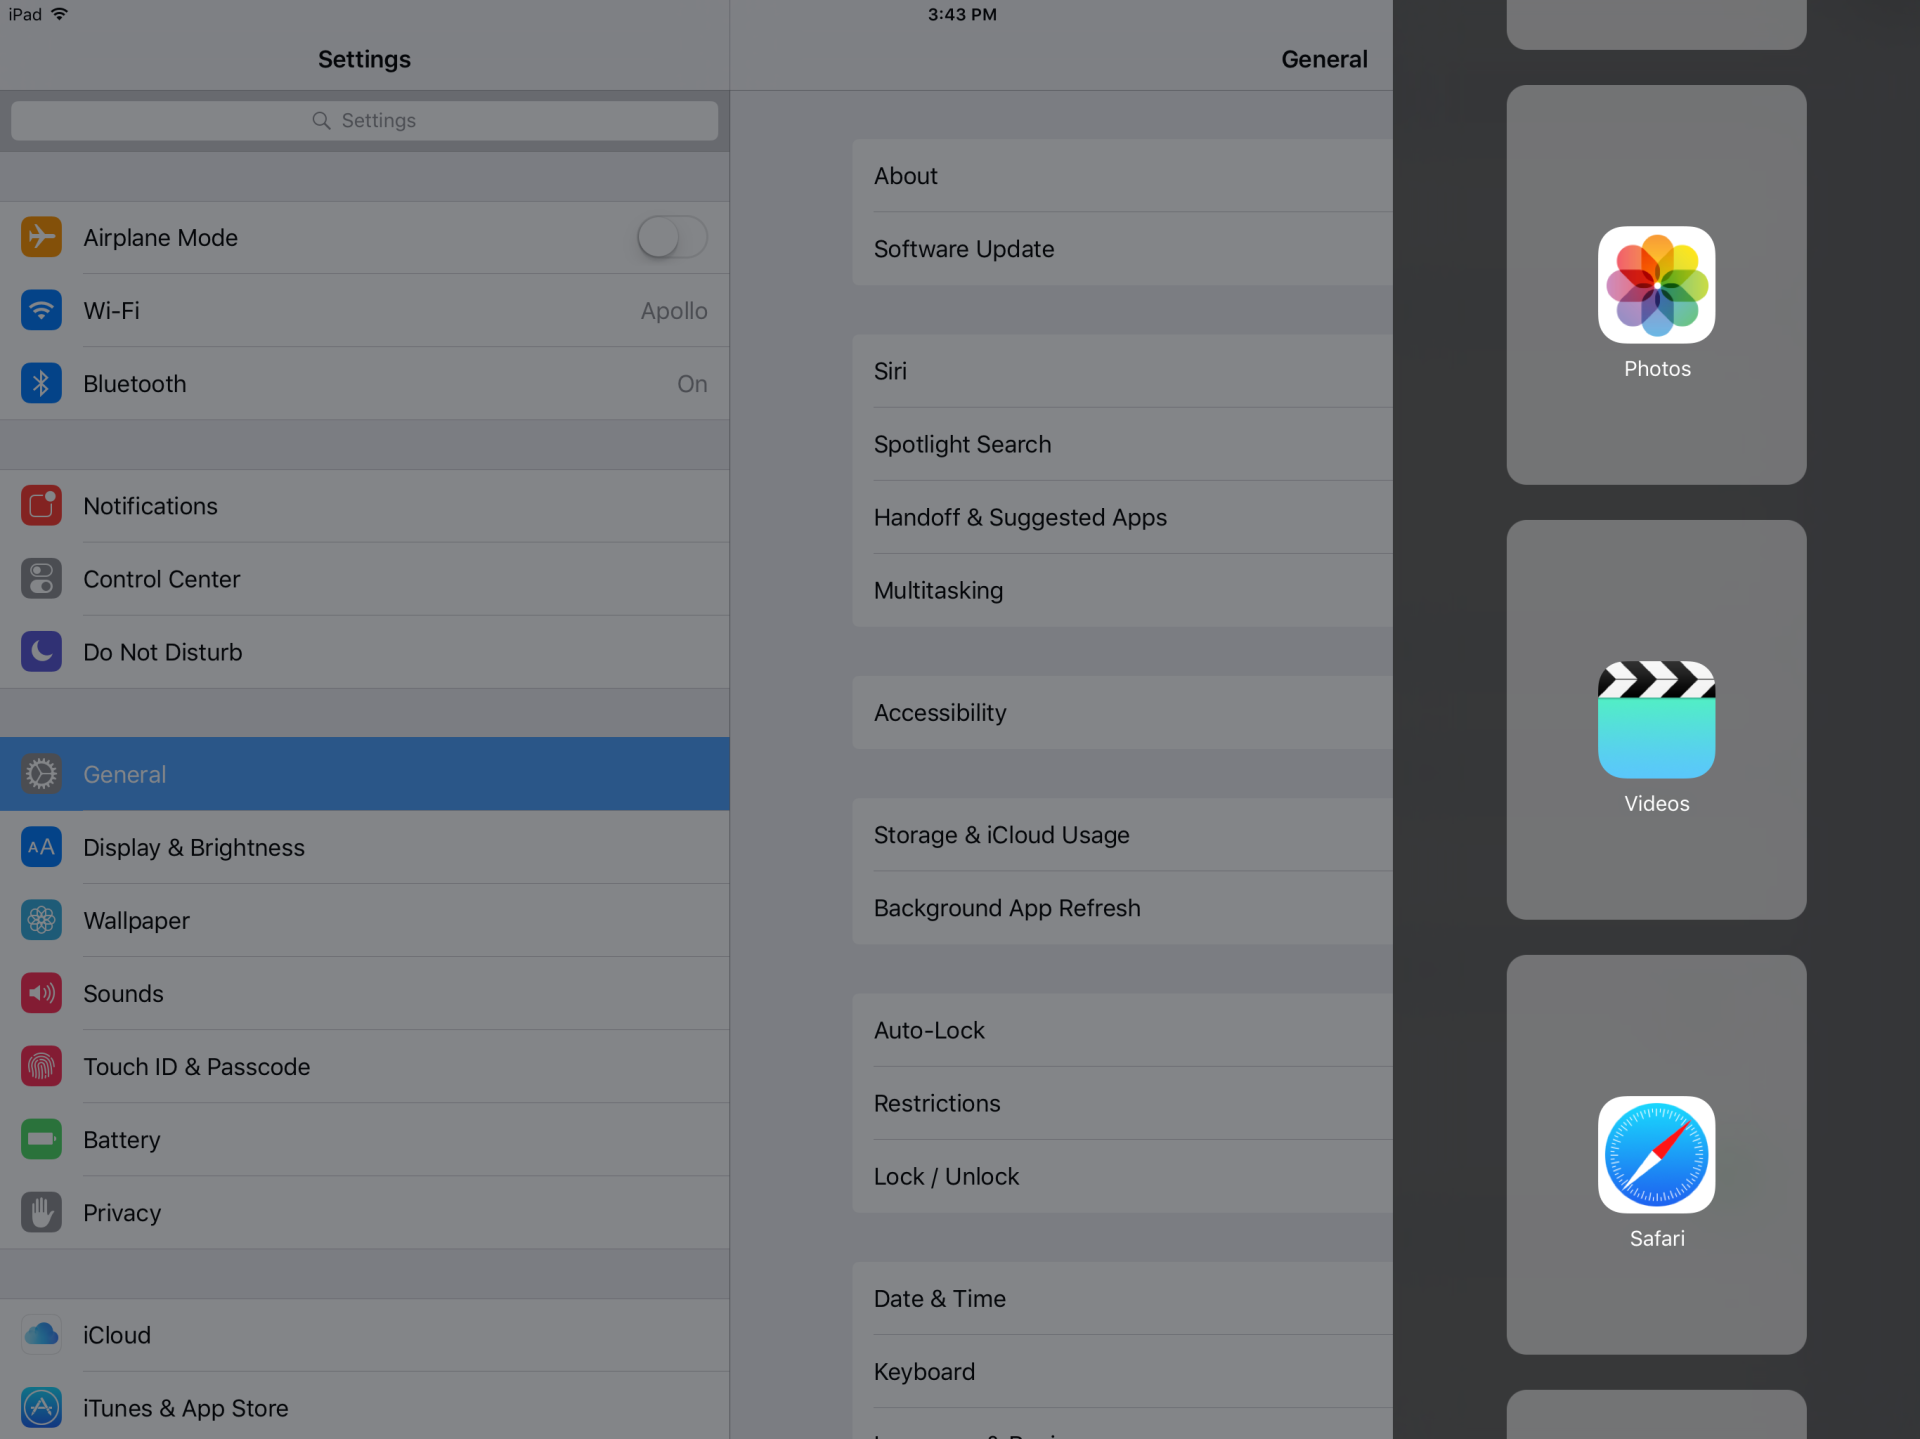 HowTo Unlock iPad Pro's full potential w/ iOS 9 features